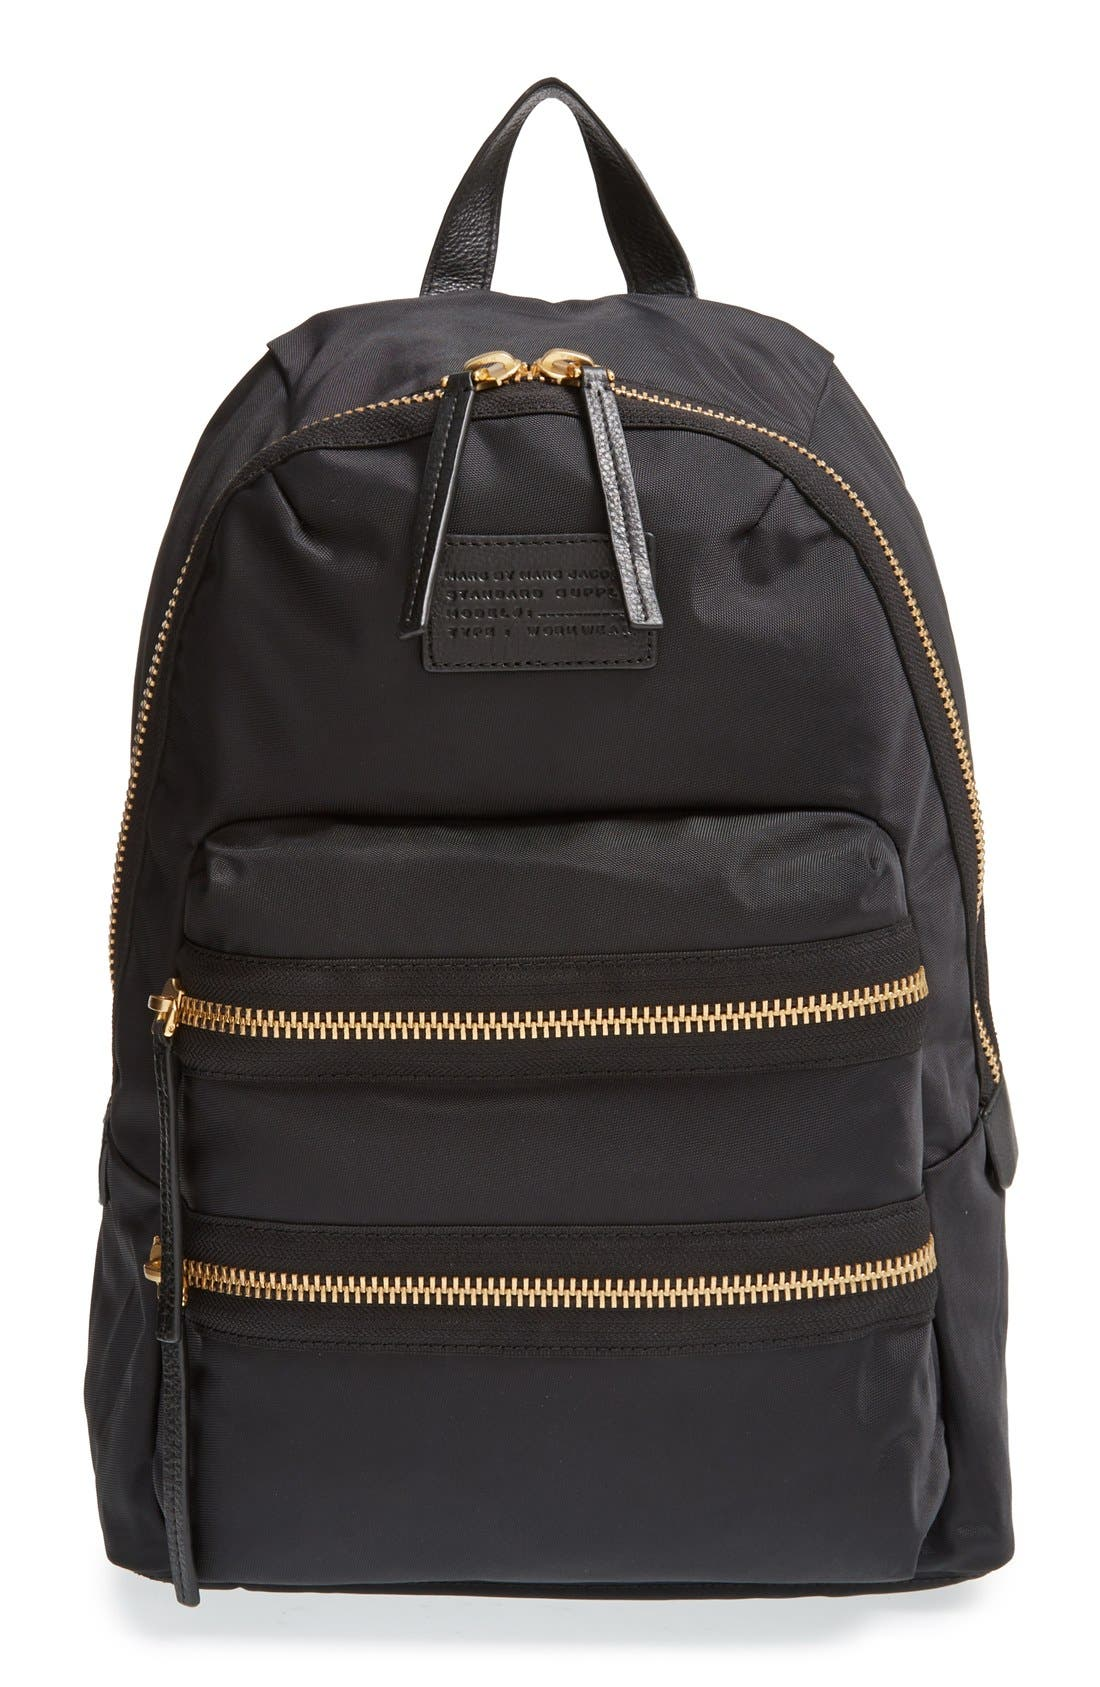 Alternate Image 1 Selected - MARC BY MARC JACOBS 'Domo Arigato' Backpack